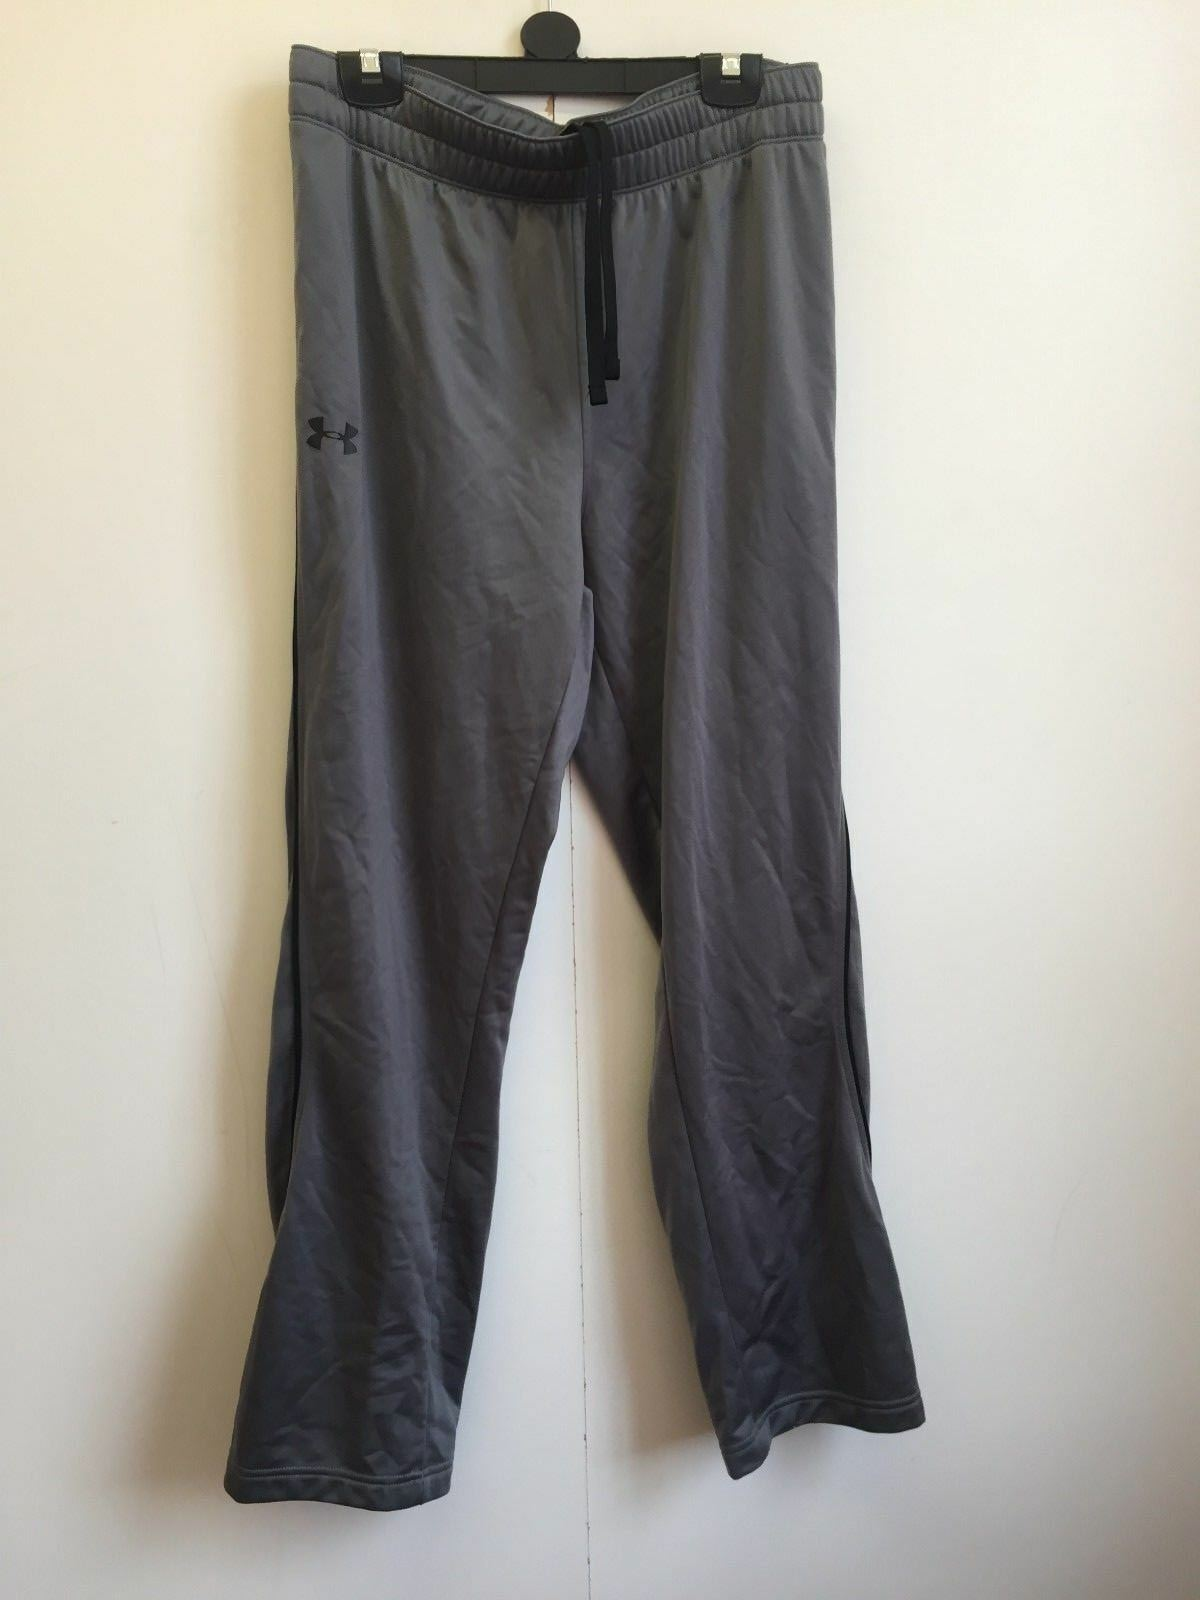 Under Armour Ua Men's Relentless Warm-up Trousers - Large (L) - Grey - New